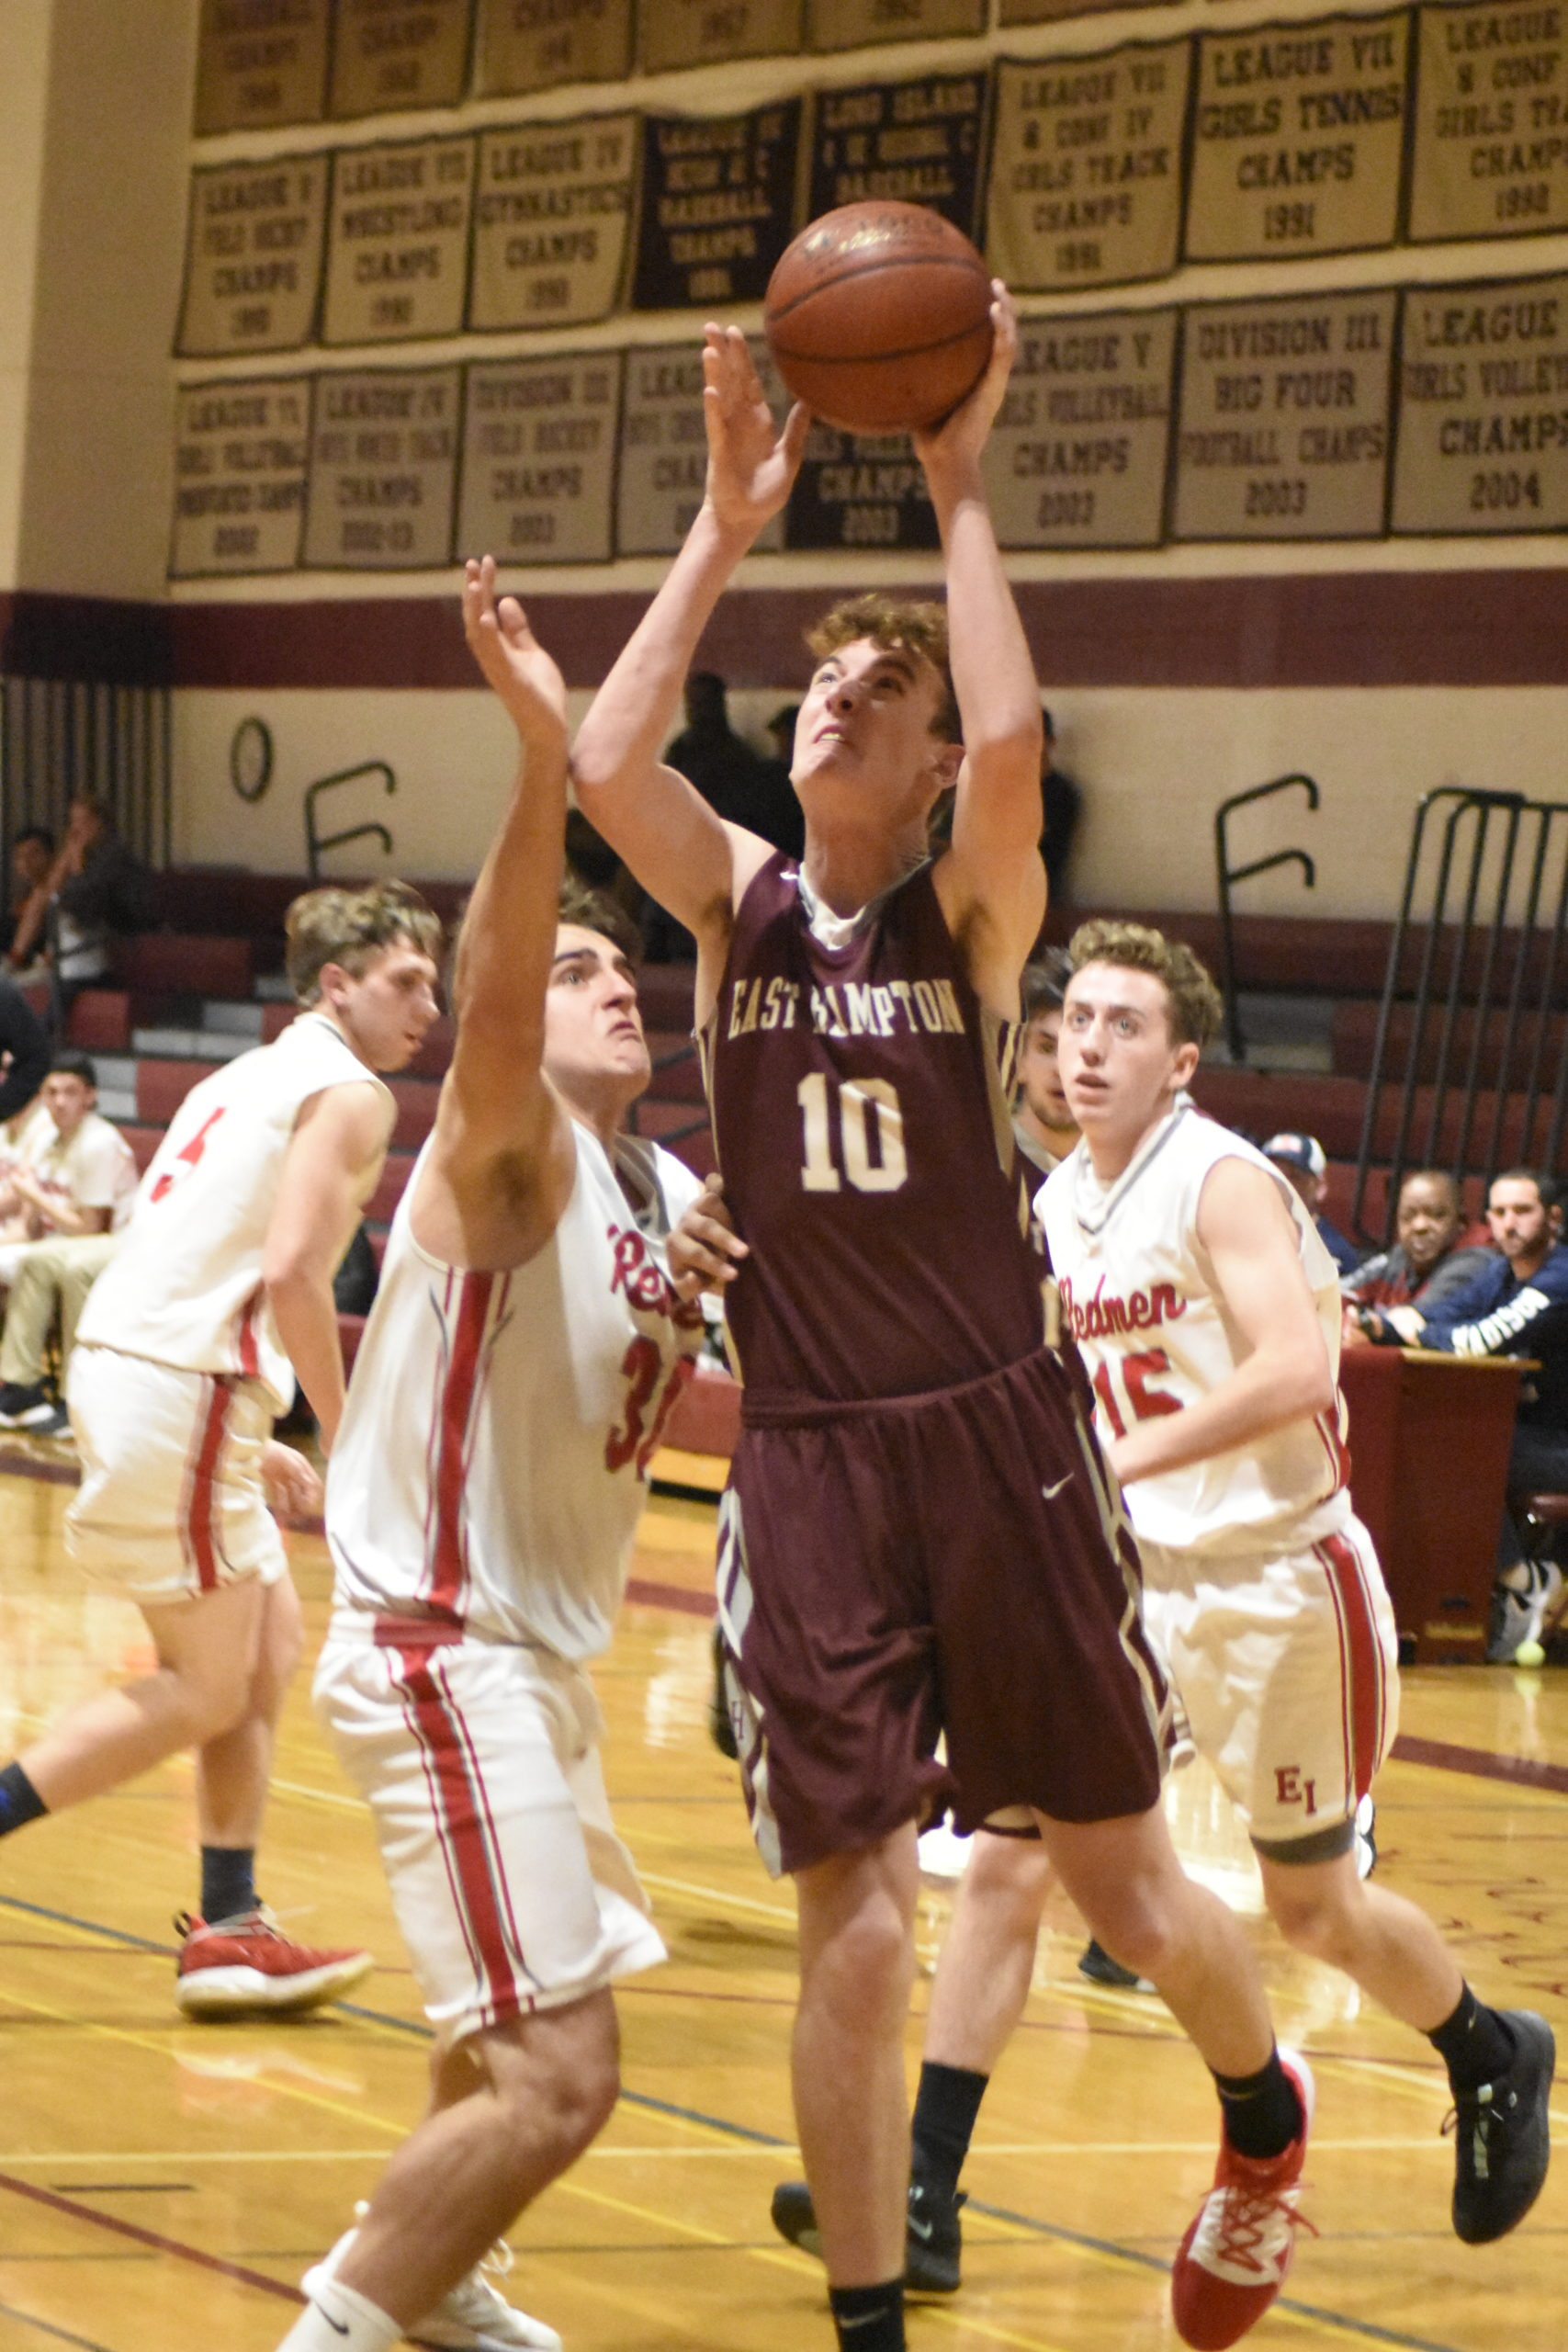 Bonacker Charlie Condon, along with fellow big Travis Wallace, was praised by head coach Dan White following the game.